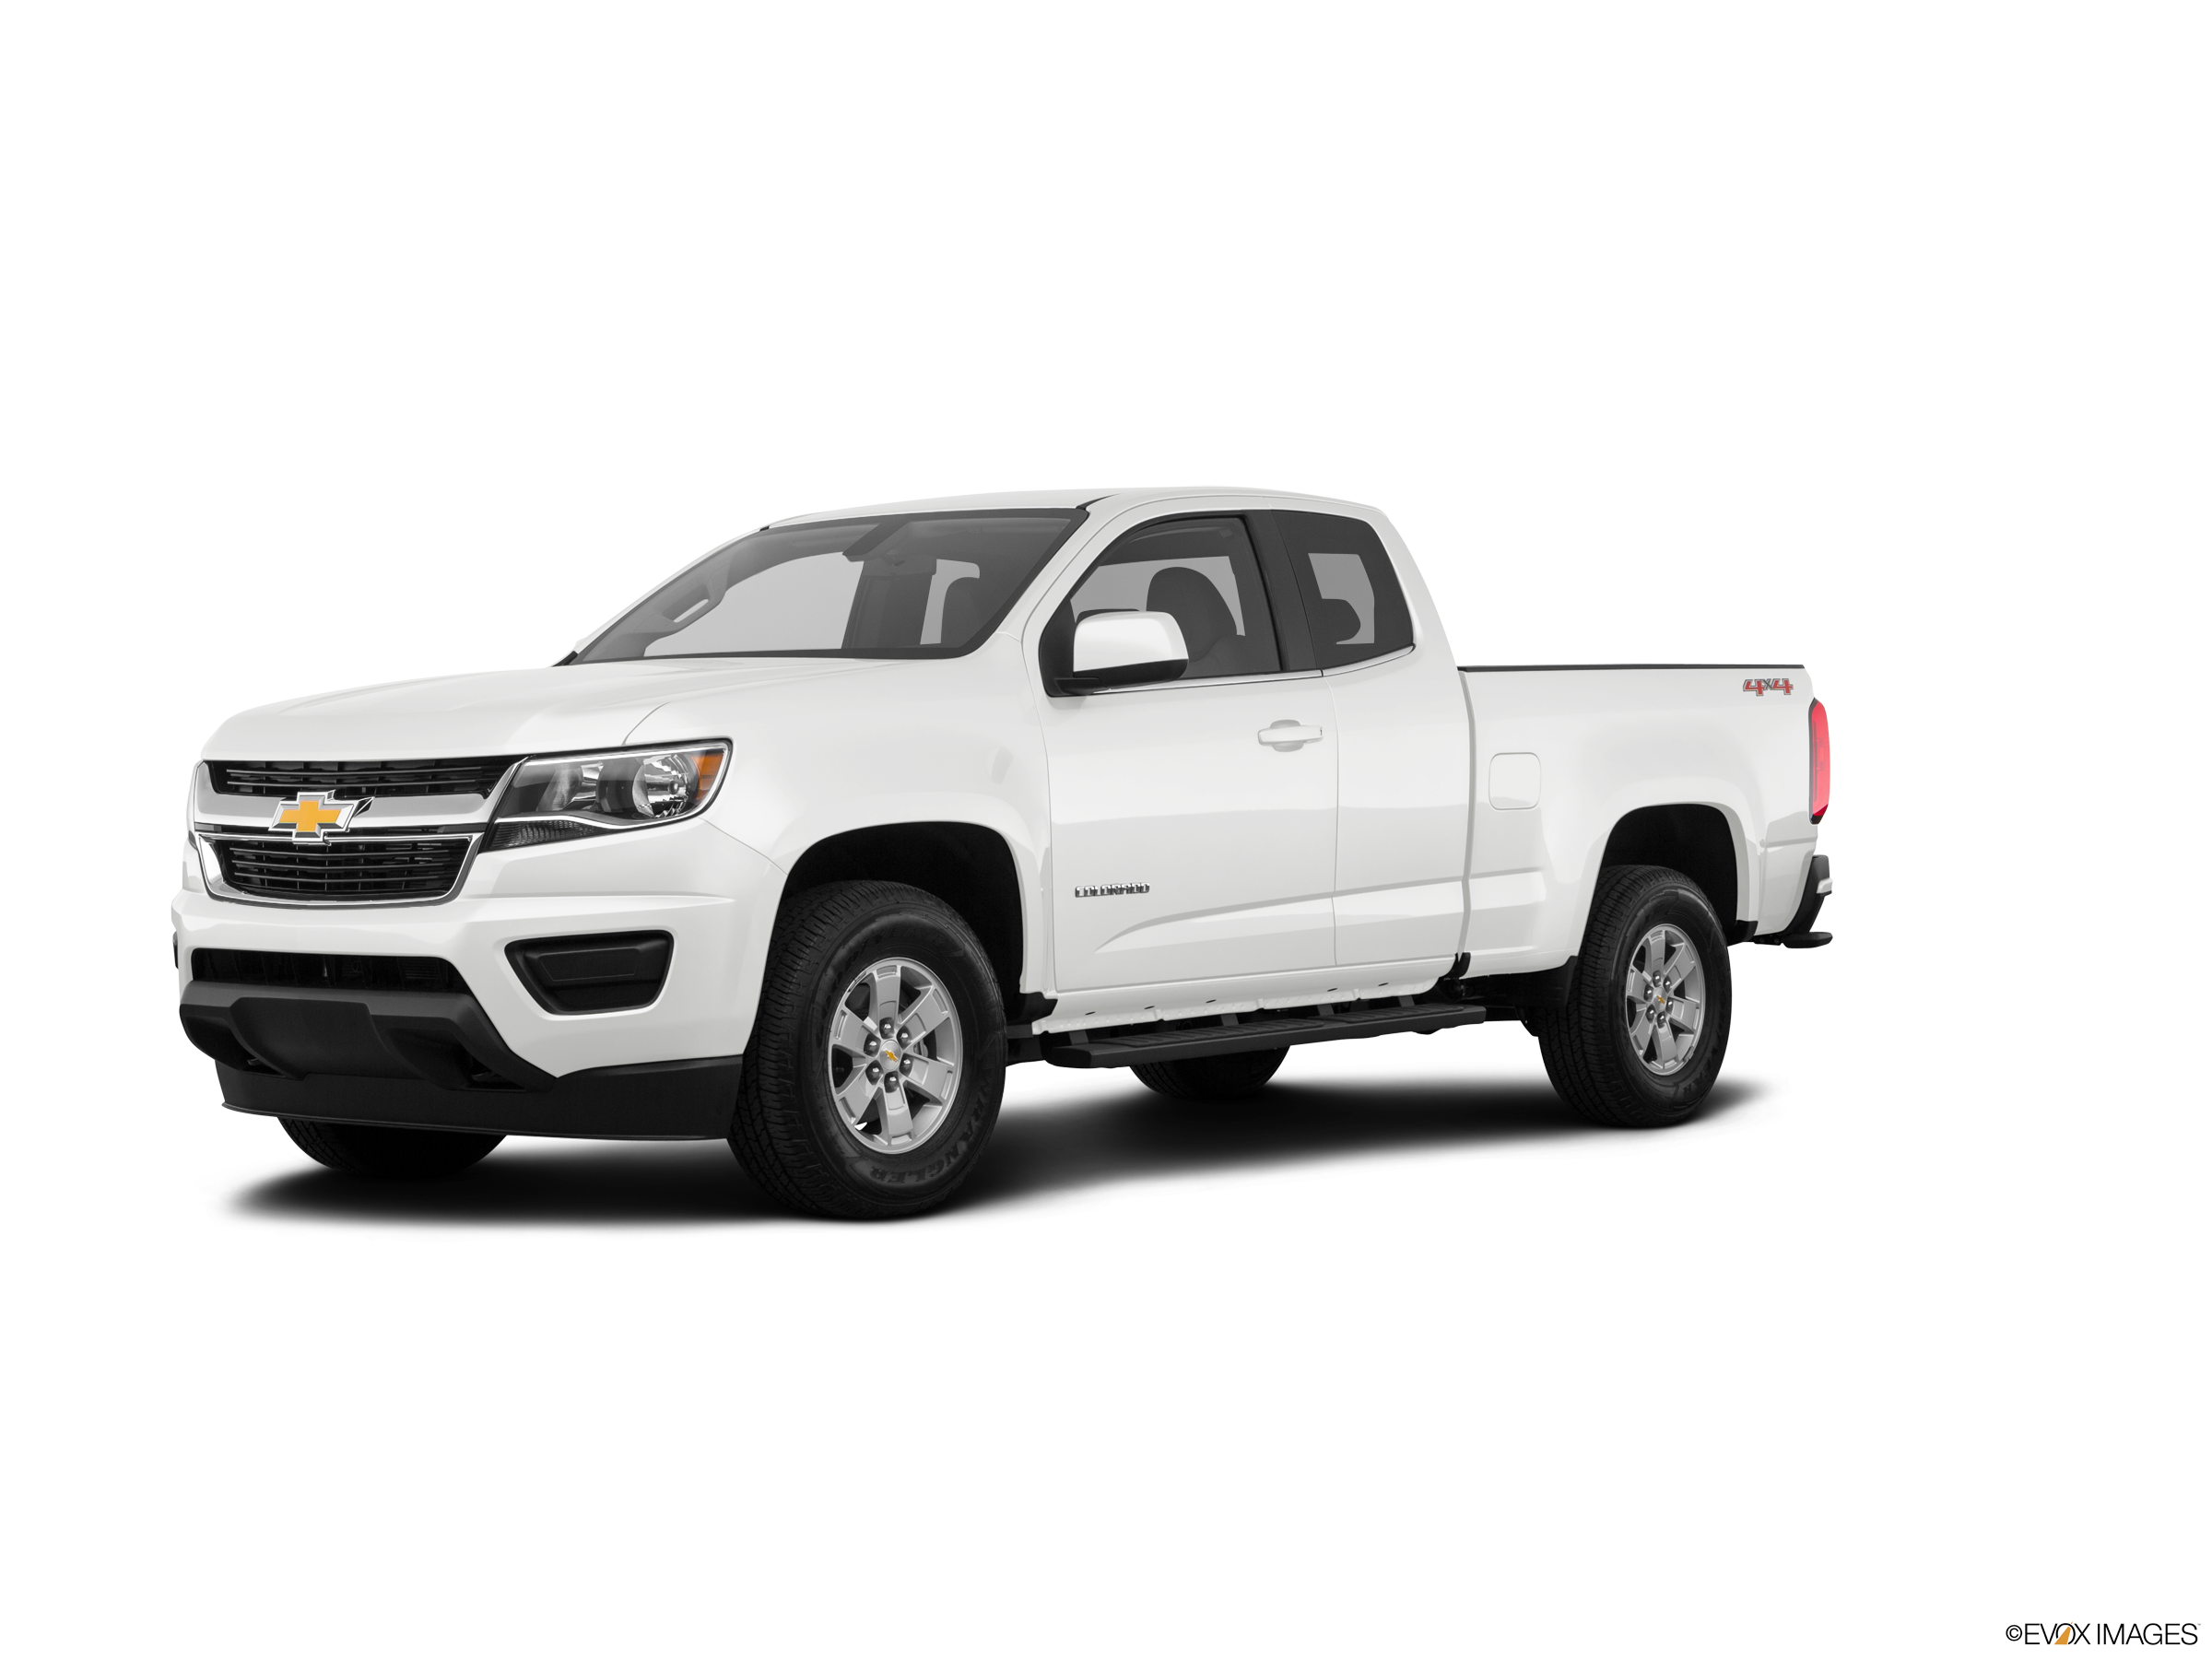 Most Fuel Efficient Trucks of 2019 - 2019 Chevrolet Colorado Extended Cab